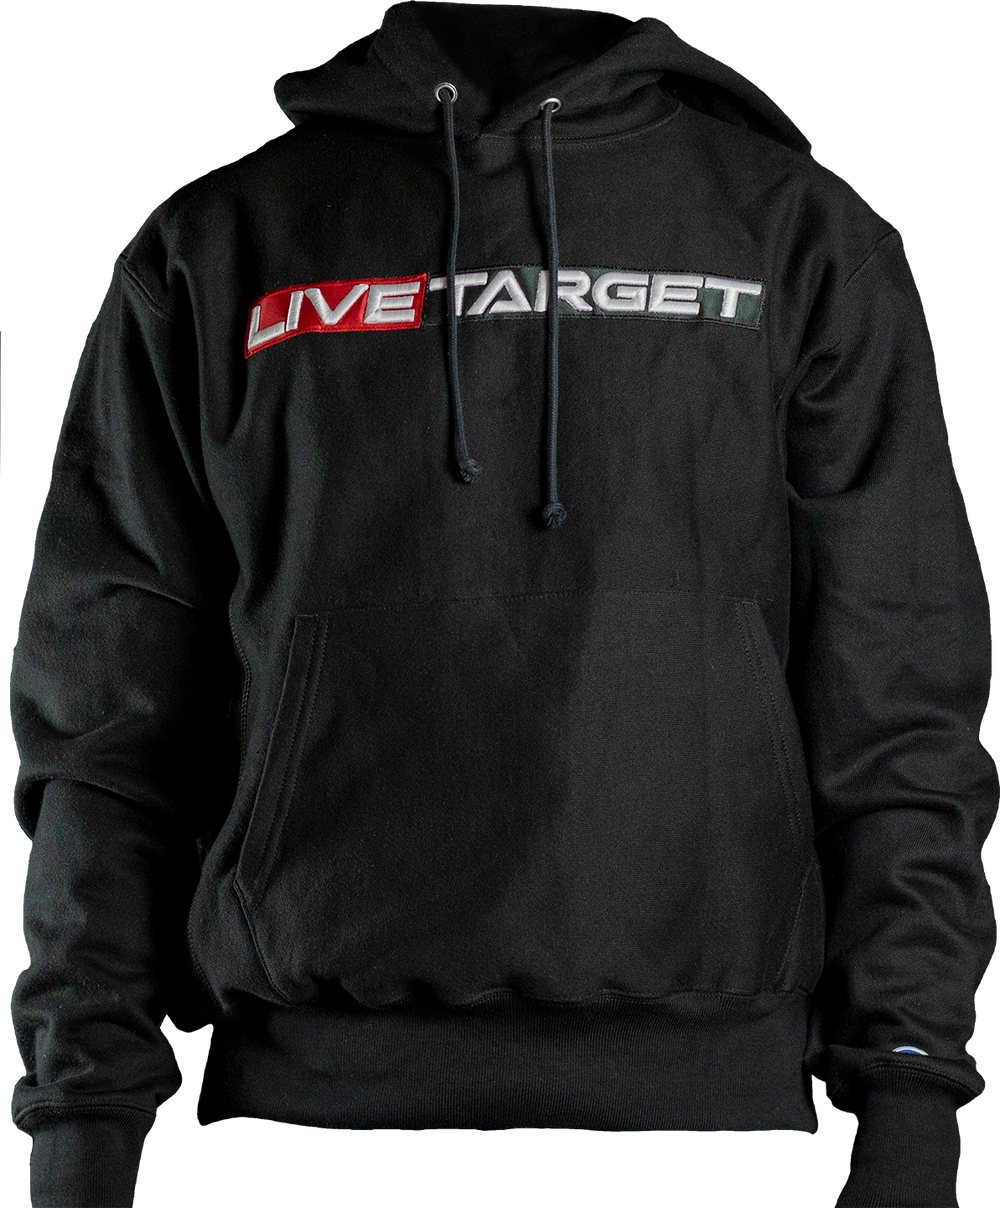 LIVETARGET Premium 3D Embroidered Hoodie